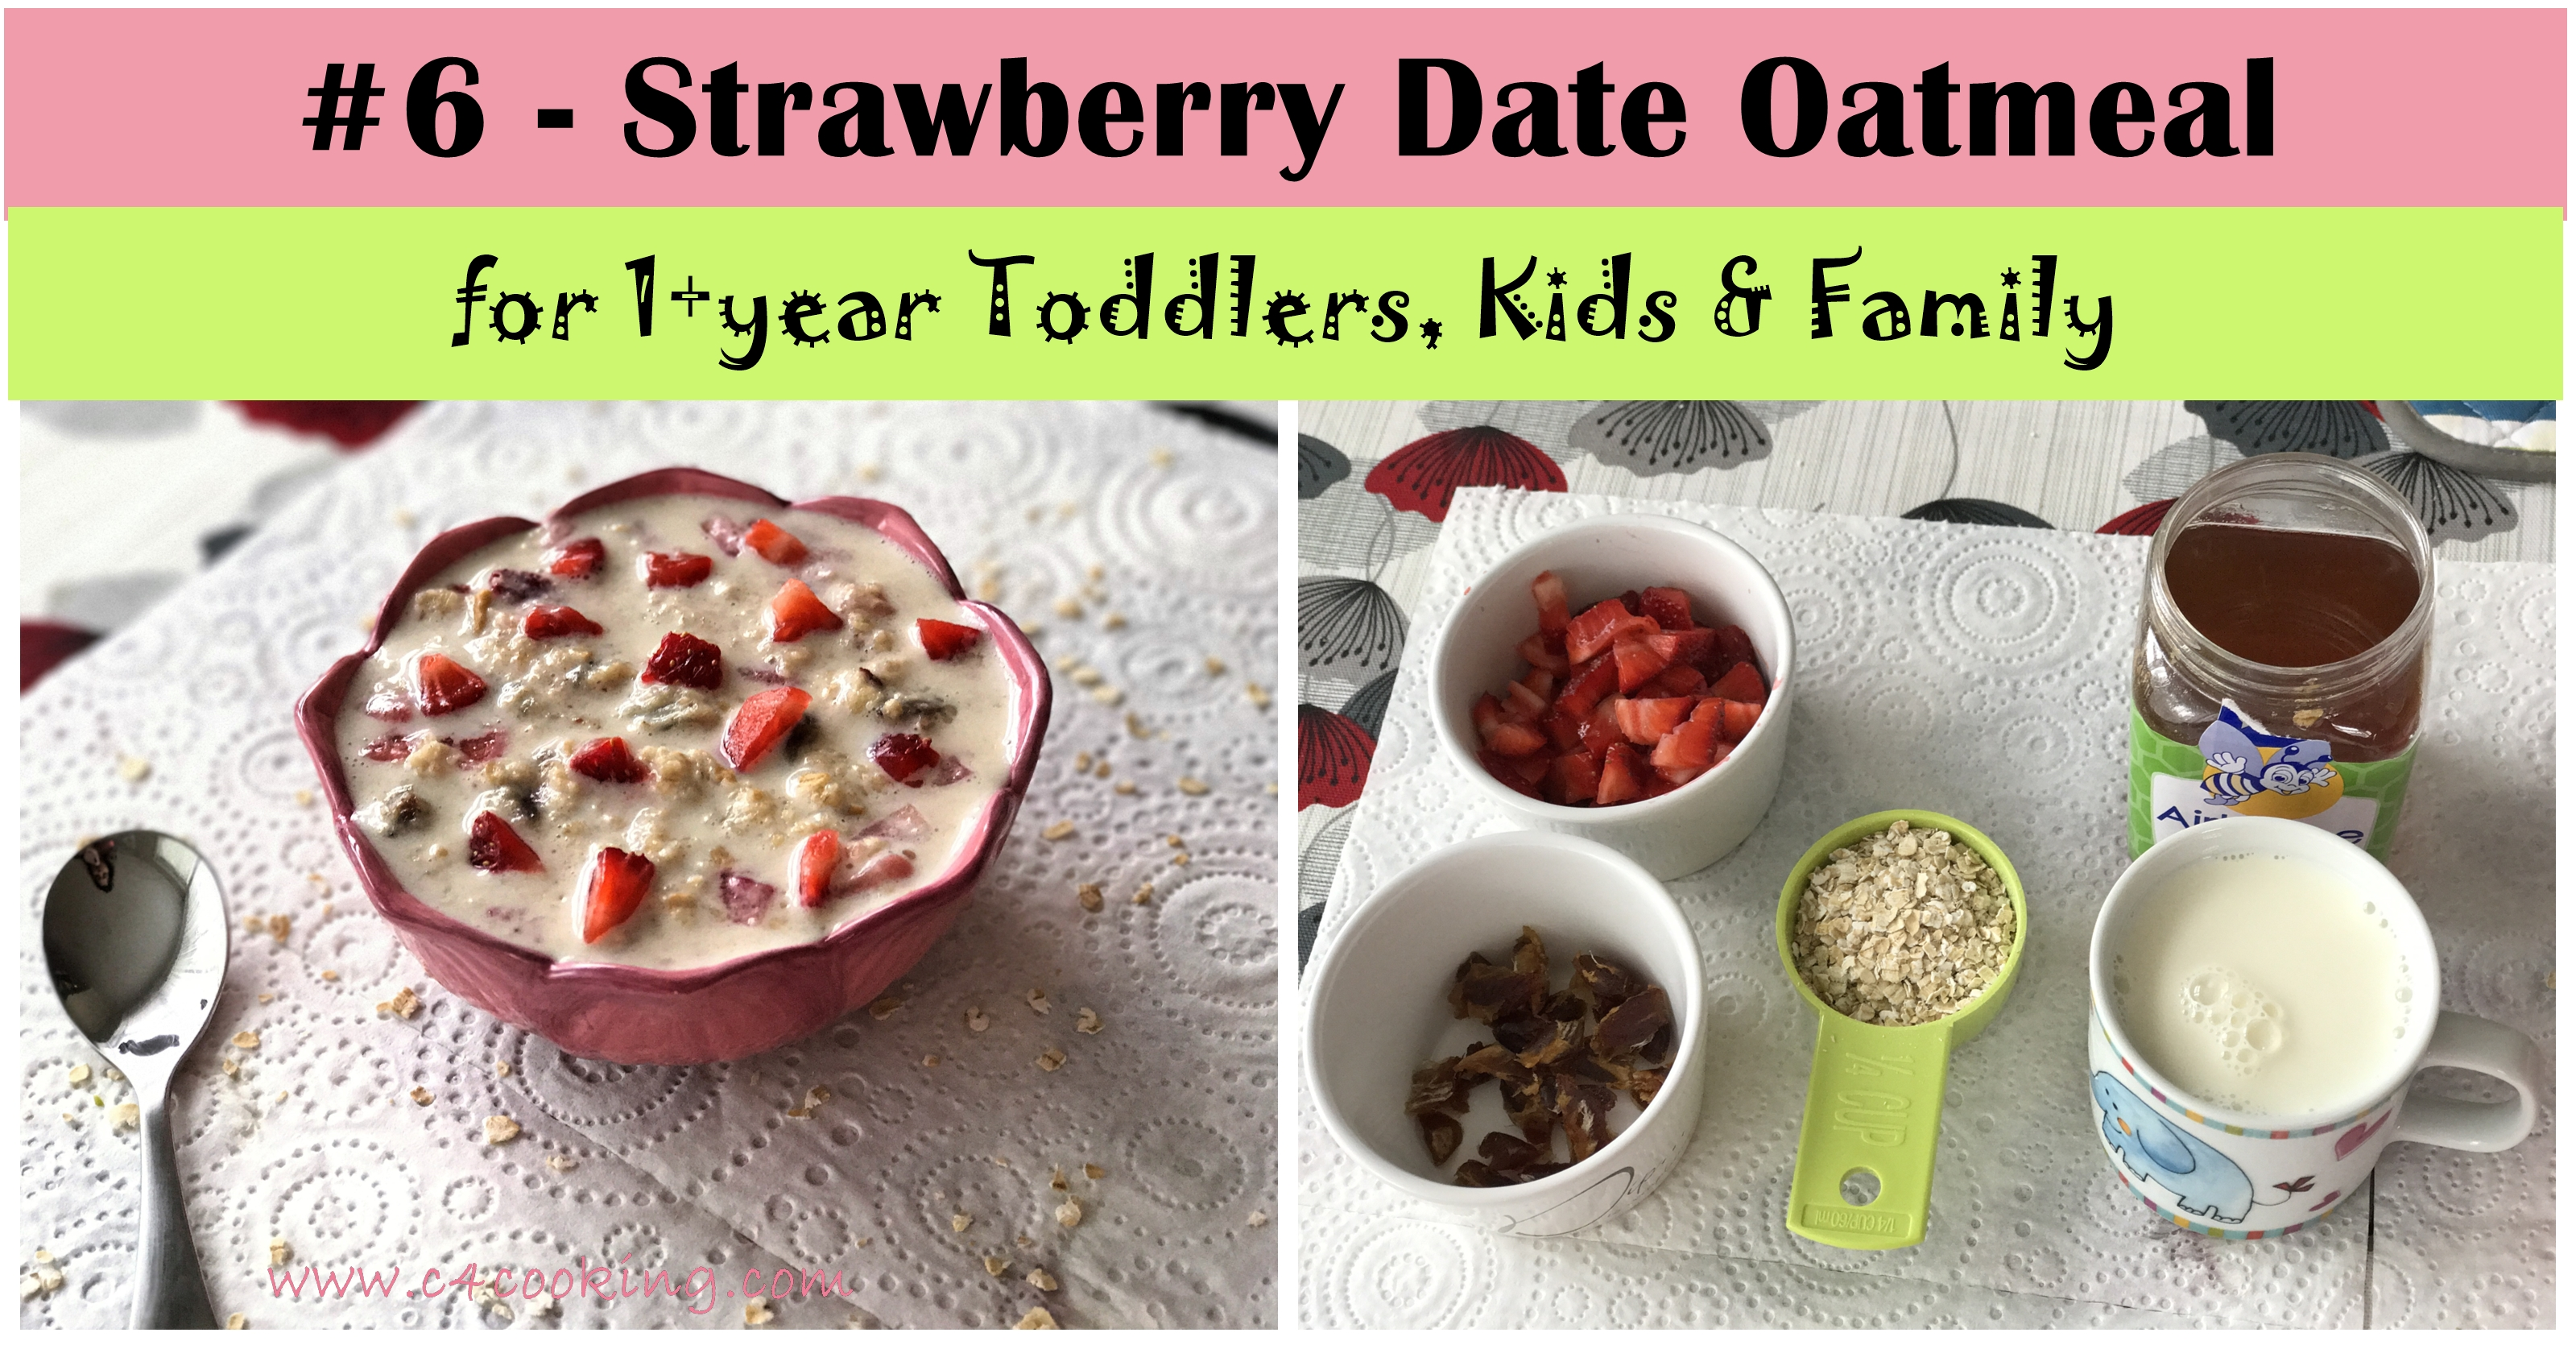 Strawberry Date Oatmeal, date oatmeal ,strawberry oatmeal recipe, 6 oatmeal toddler kids c4cooking recipe